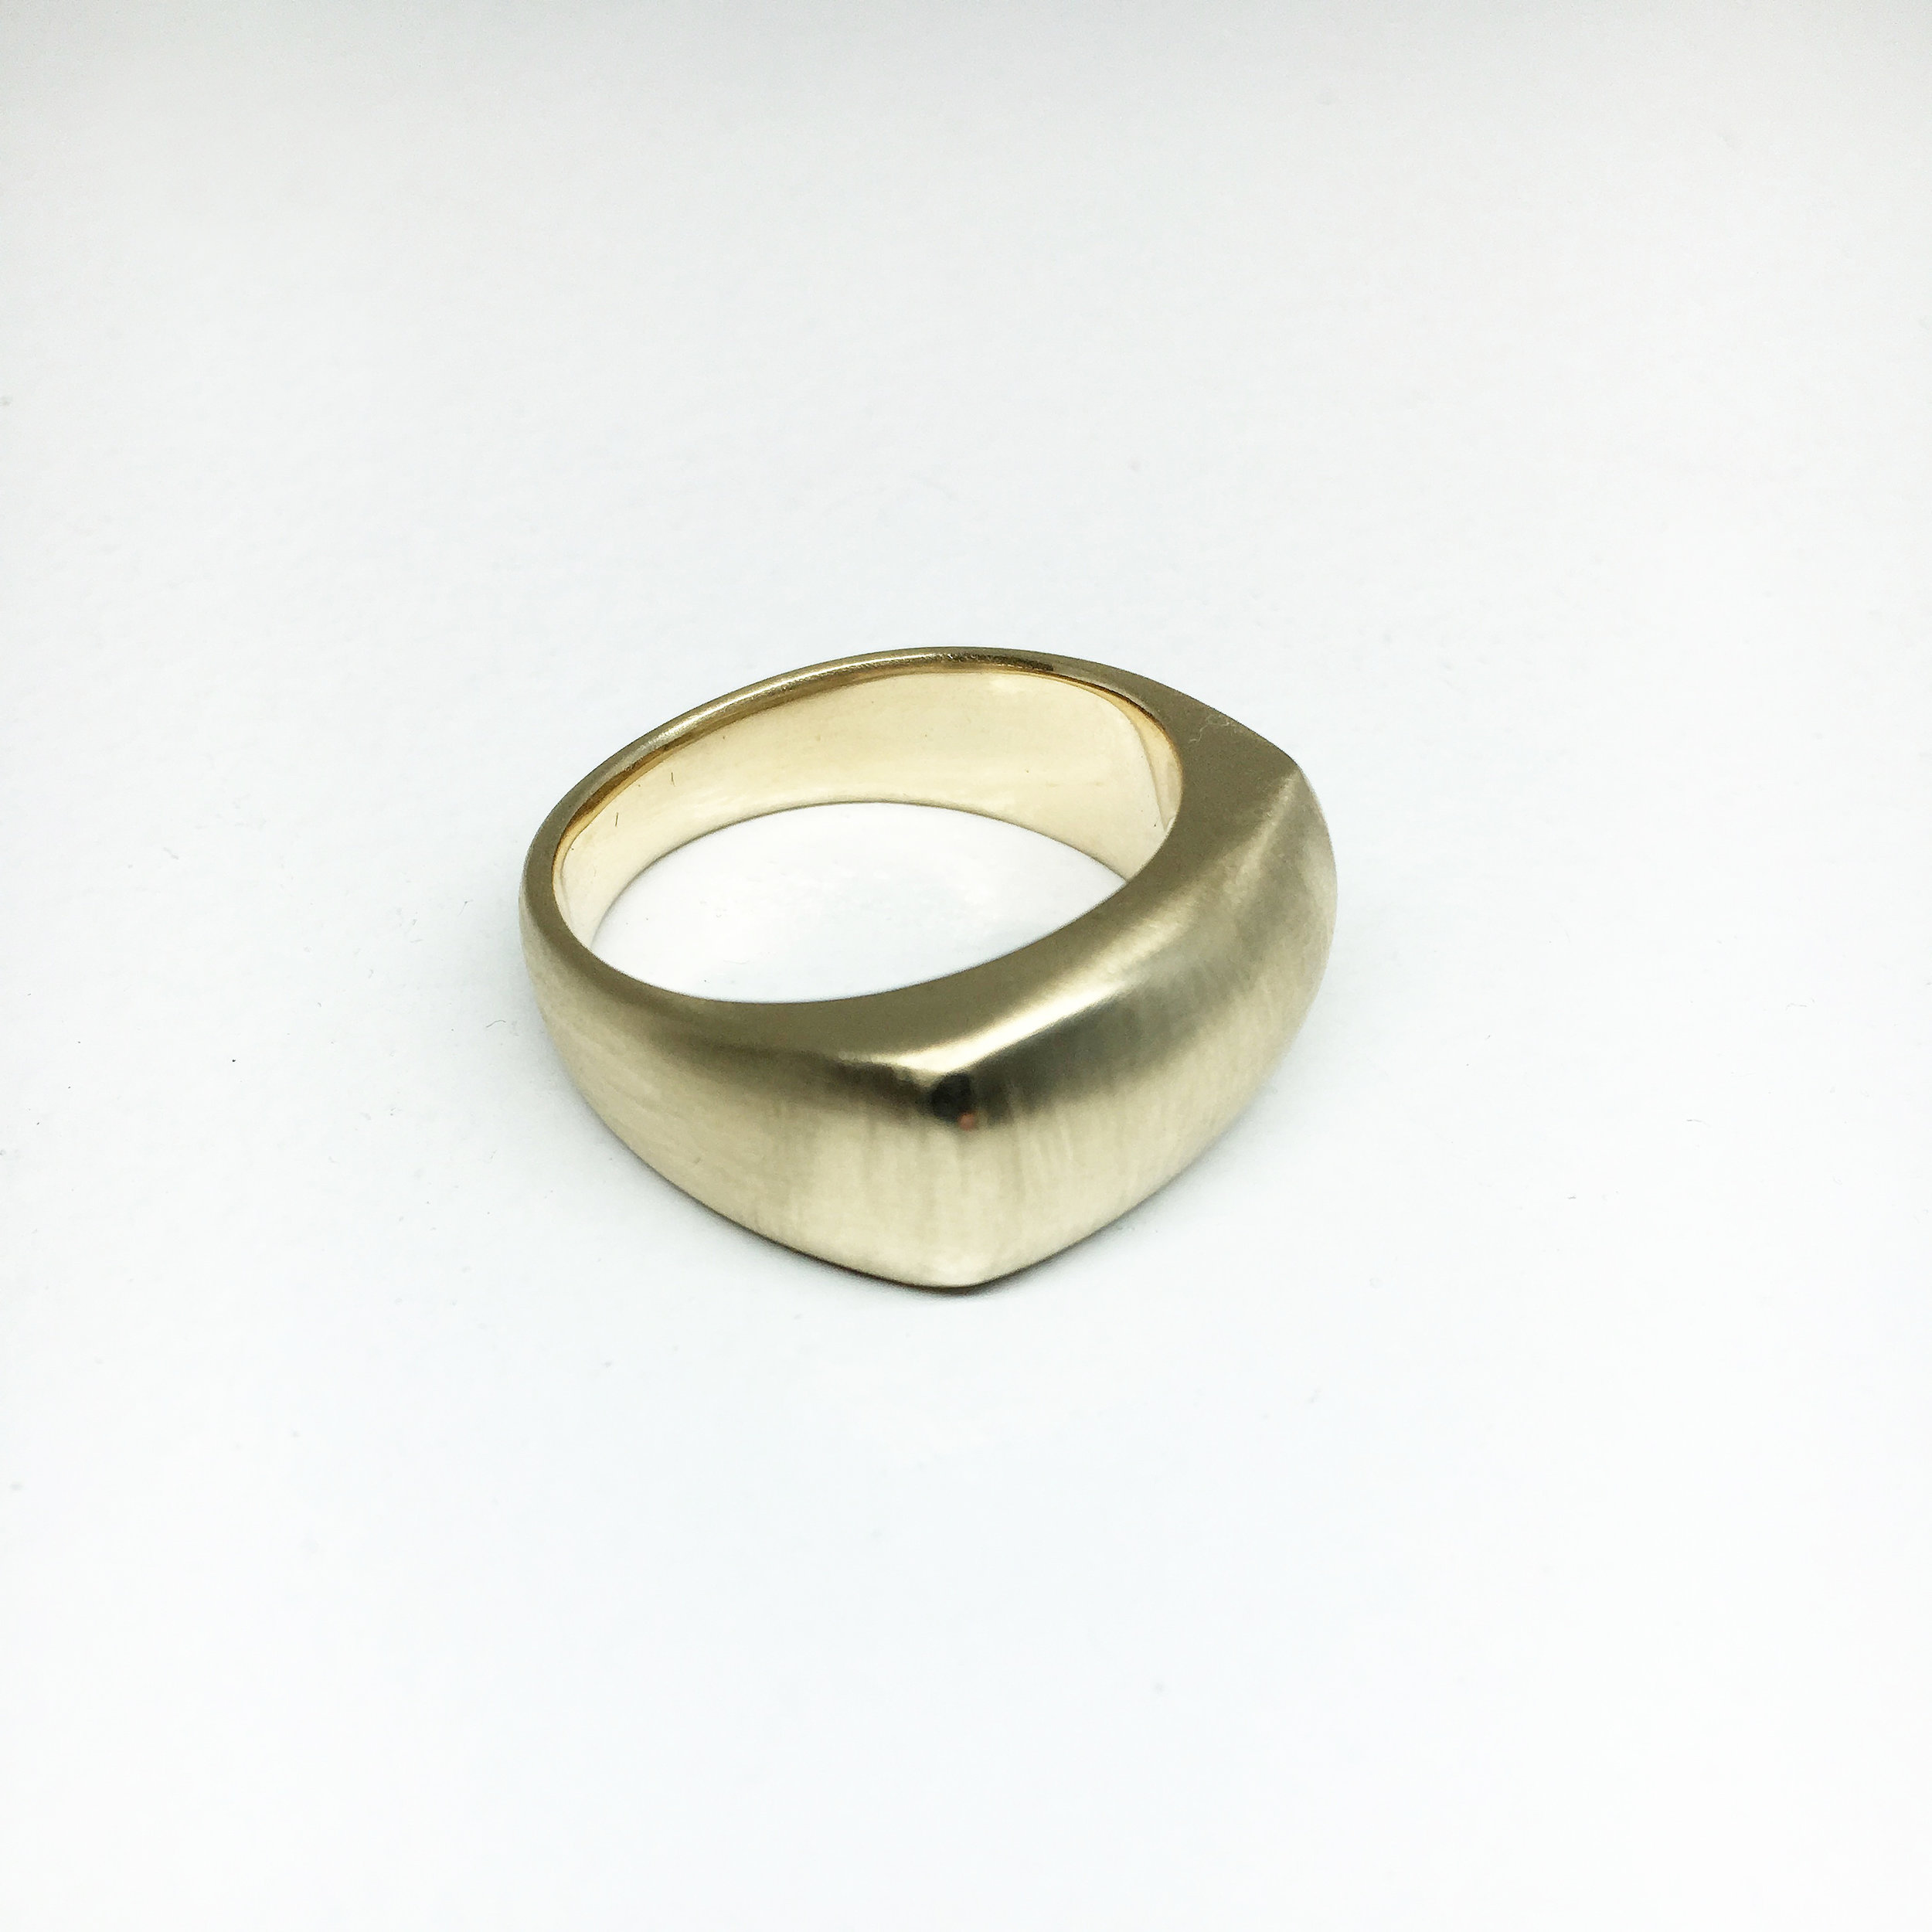 MUHAMED RING - Cushion Top Signet, 14k yellow gold